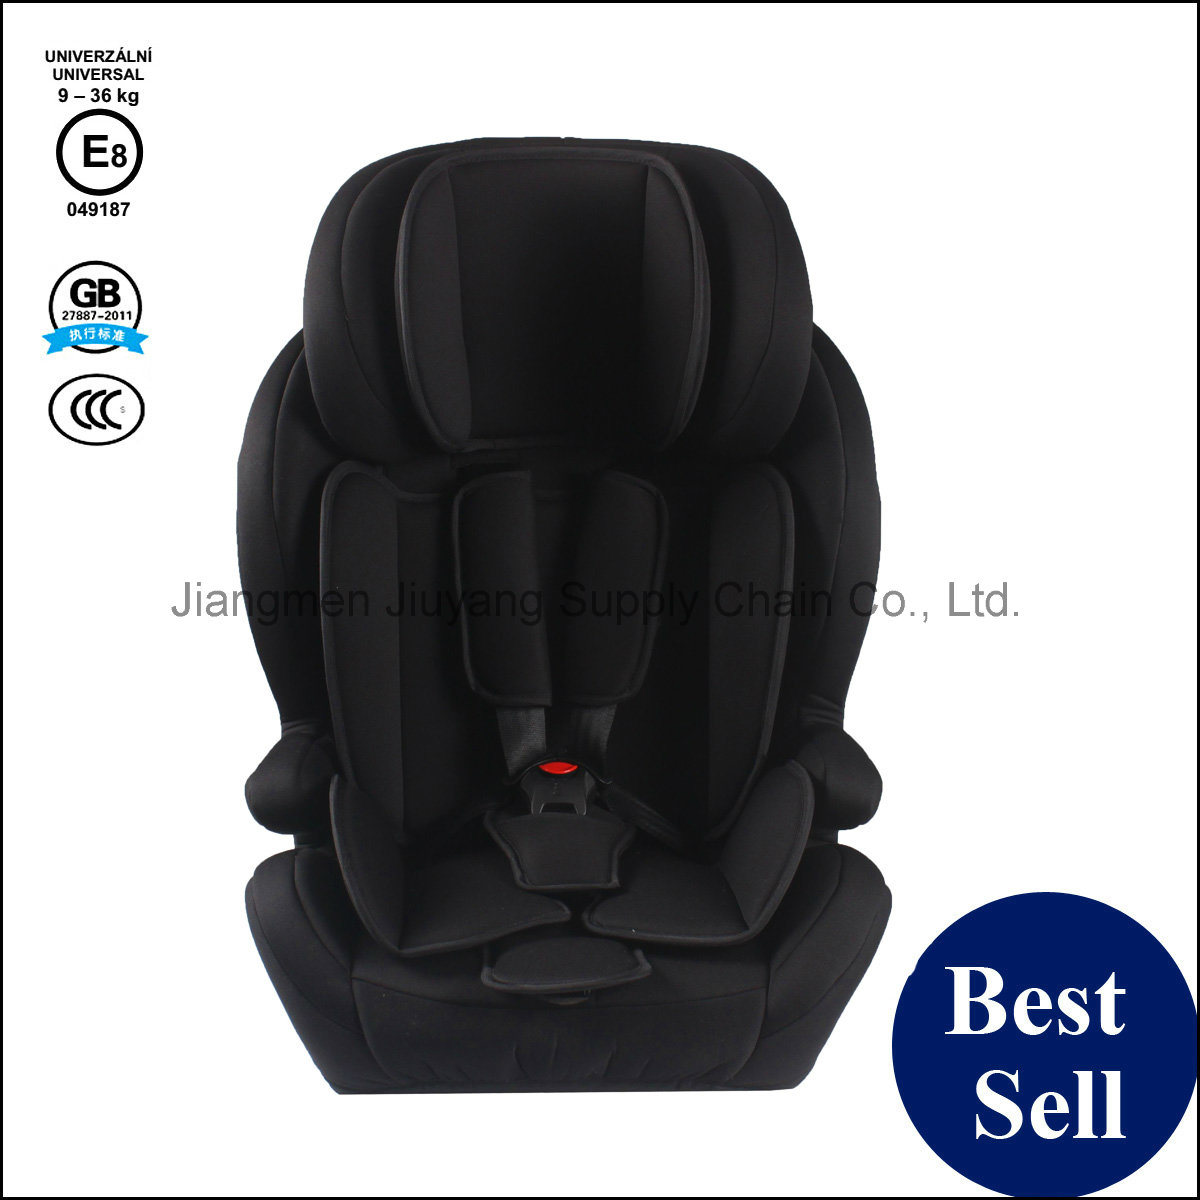 Hot Sell Product - ECE Baby Car Safety Seat for 4-12 Years Child